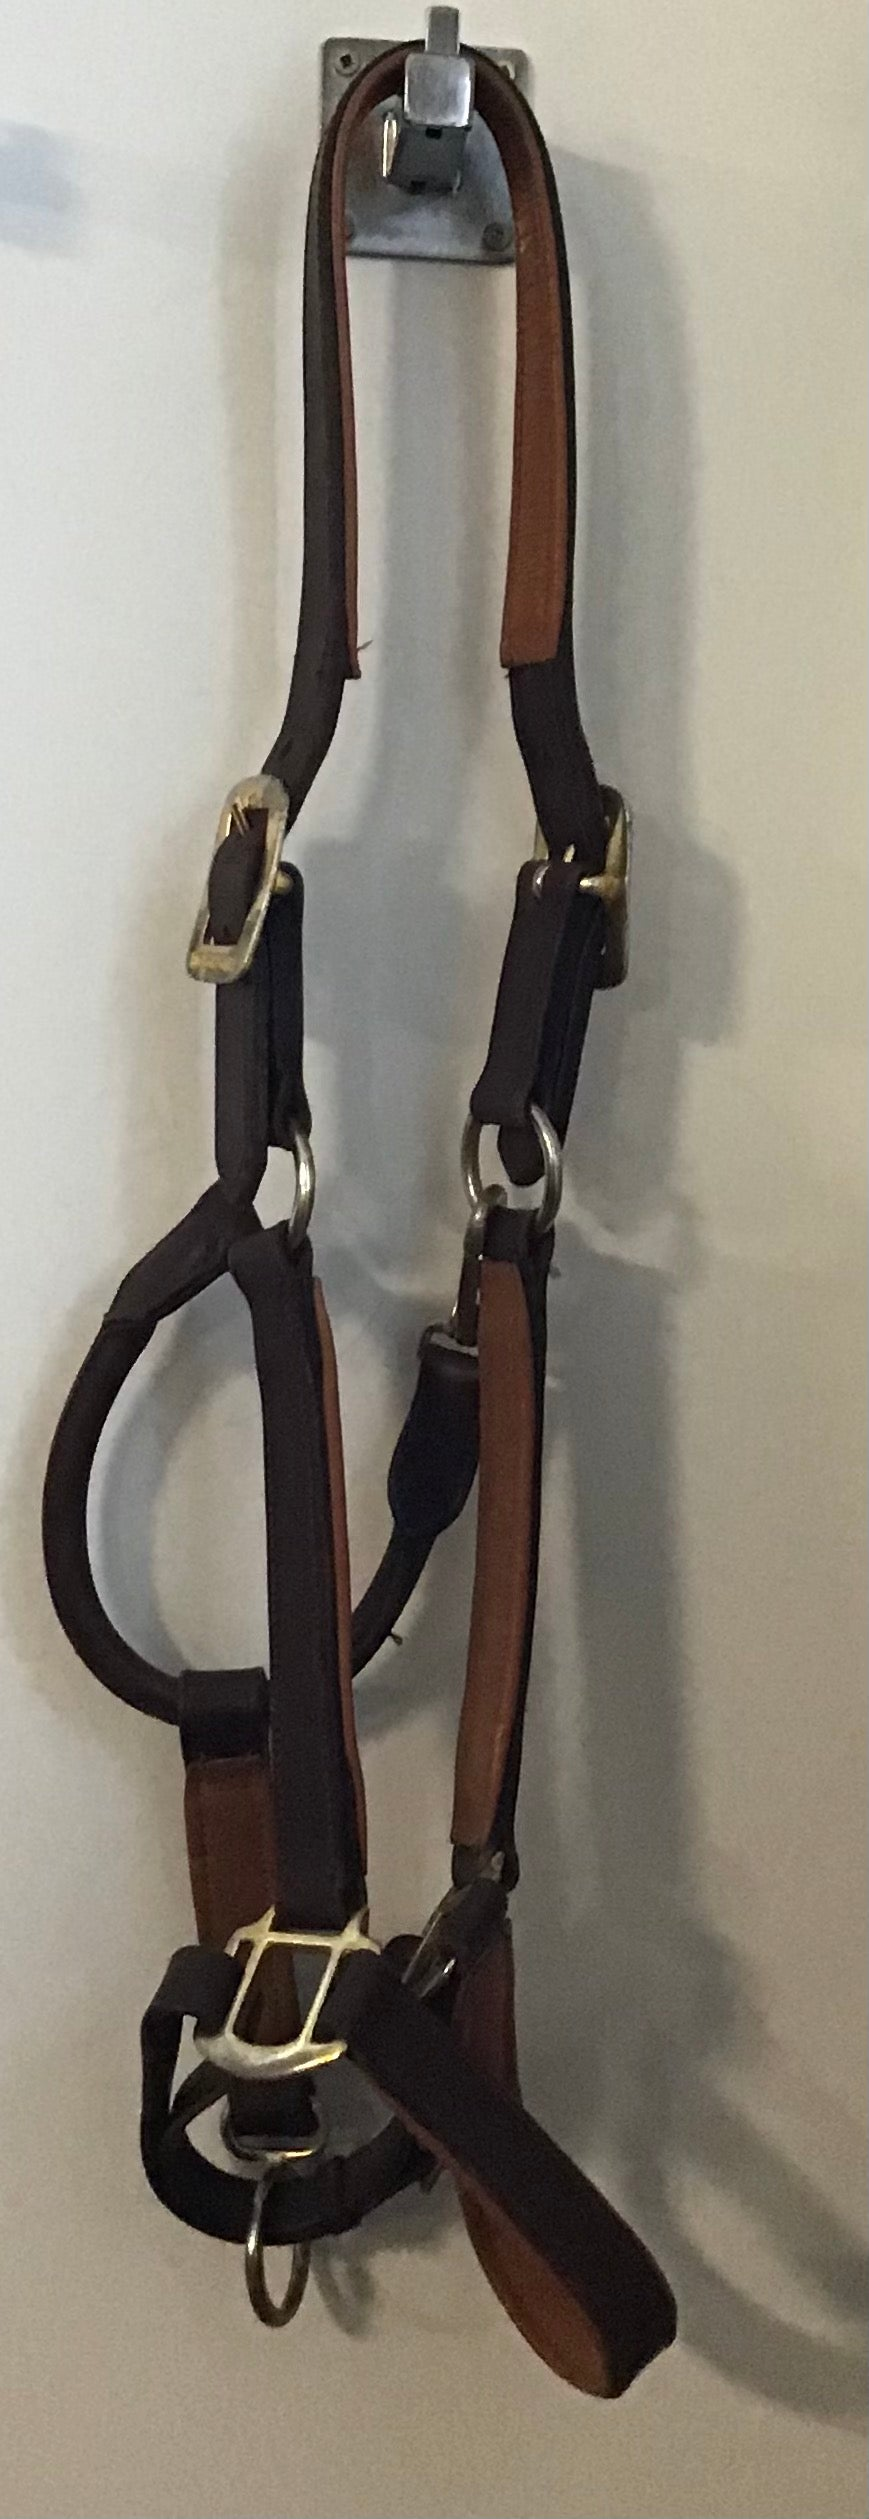 Horseware leather halter (WB)